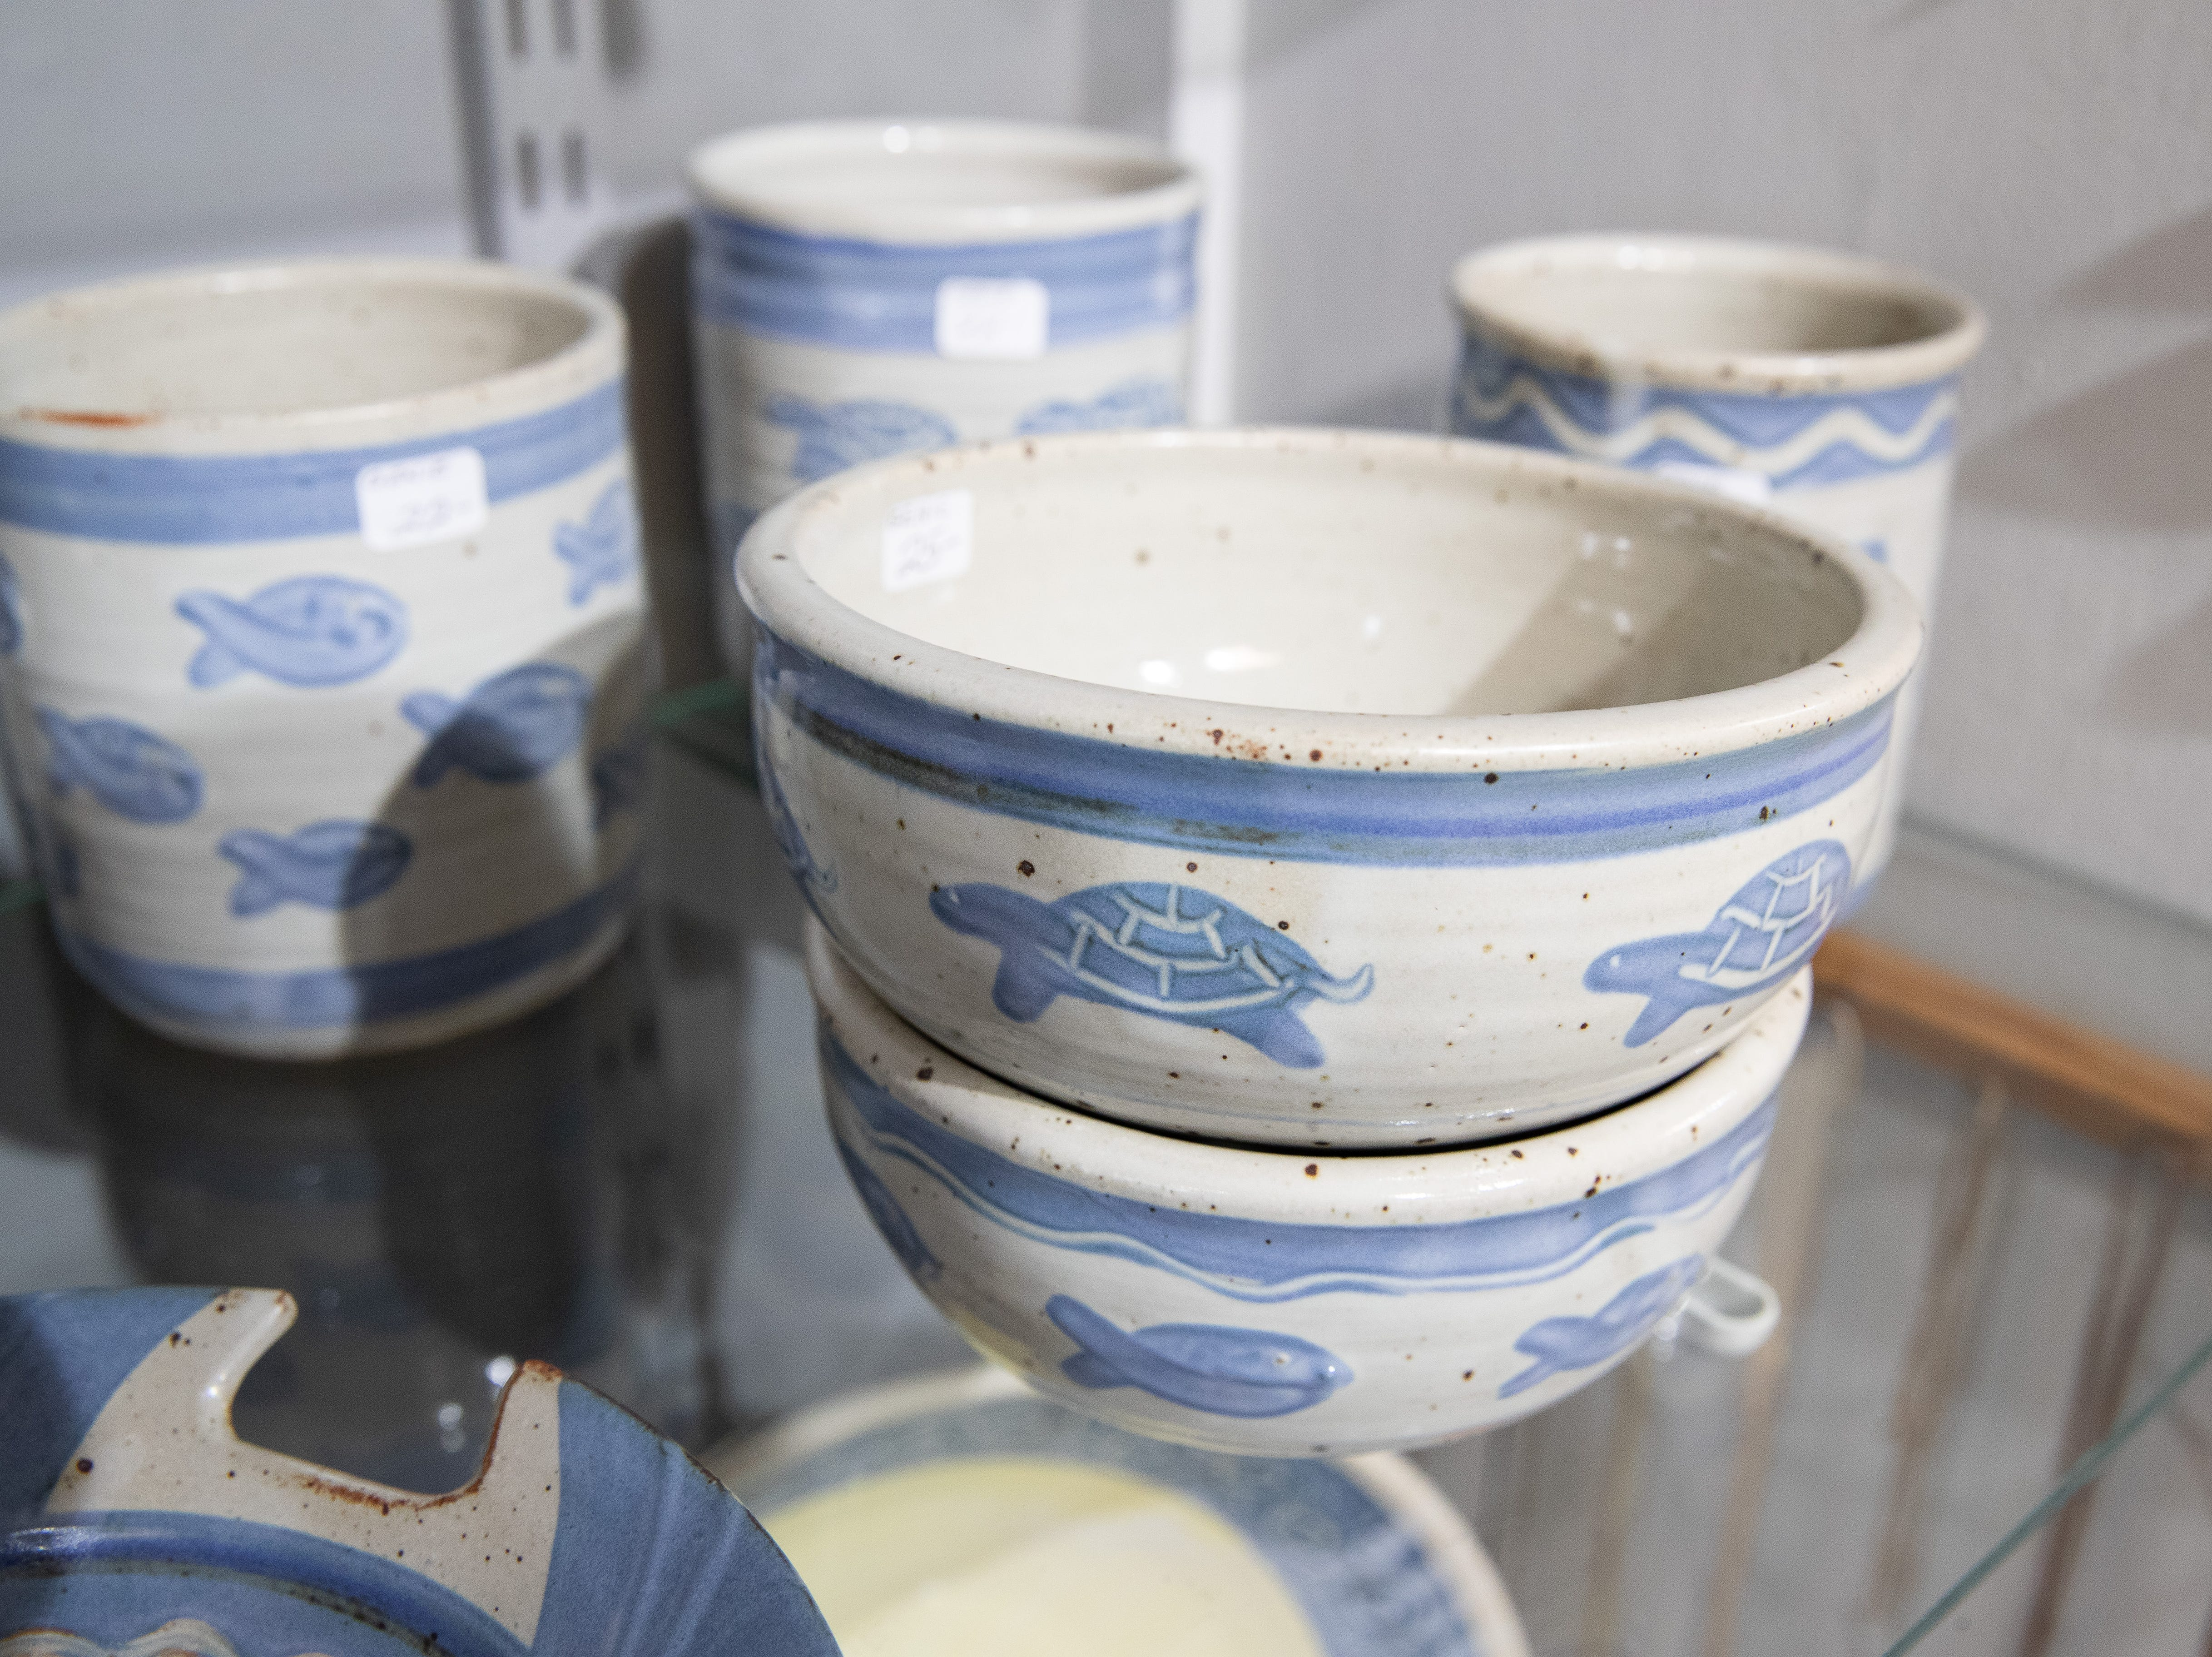 Ceramics and pottery on display at the Wind Way Gallery at 203 South Austin Street in Rockport.